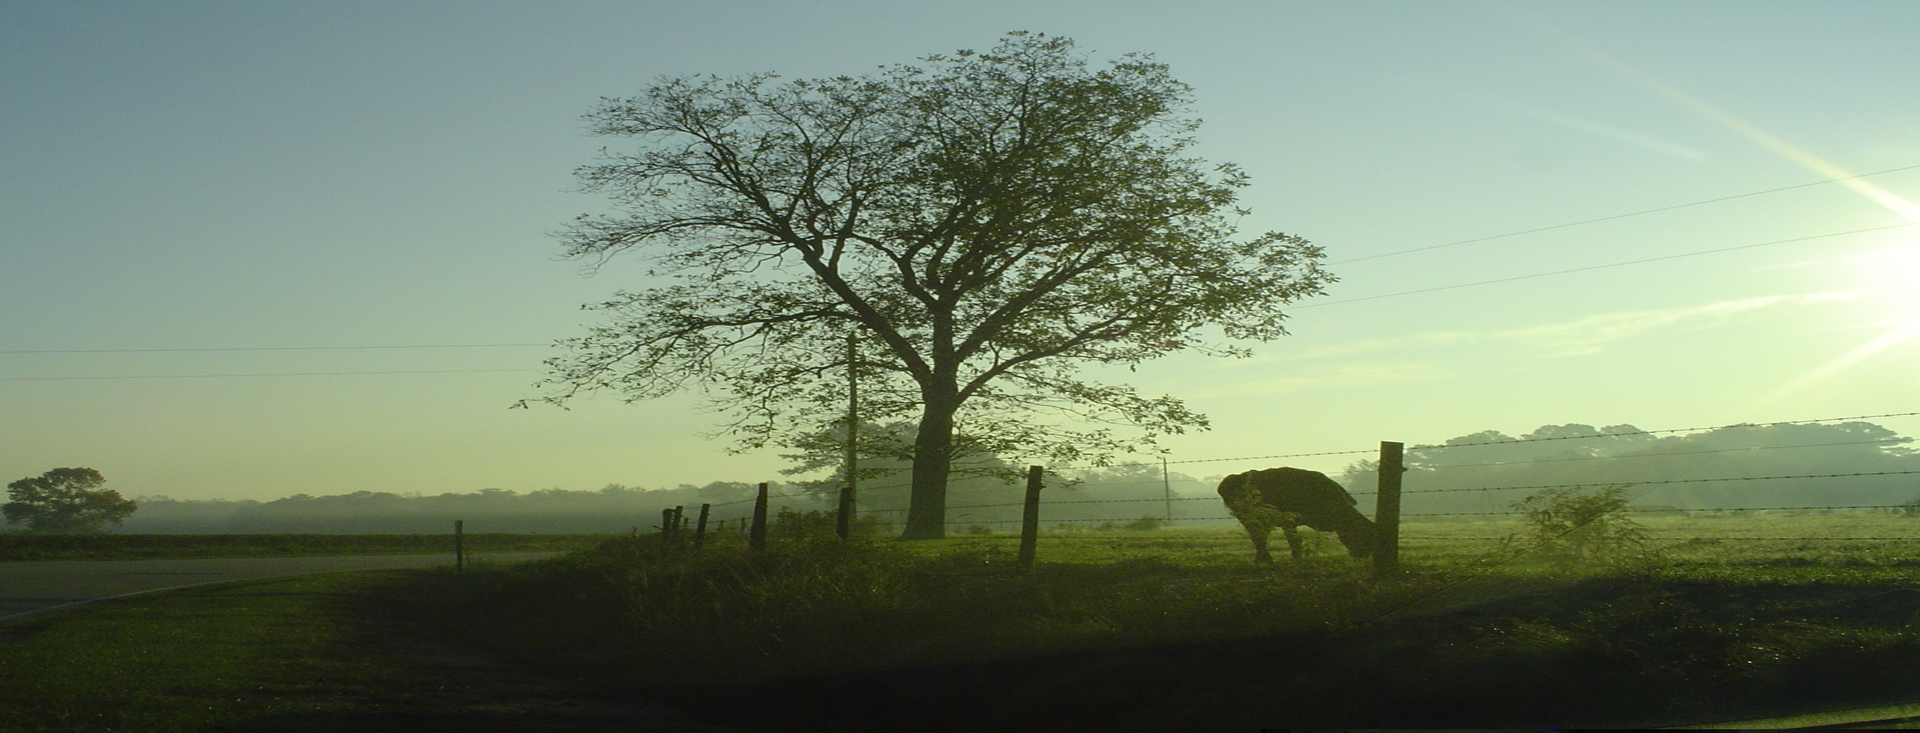 Early Morning, road, tree, and farm